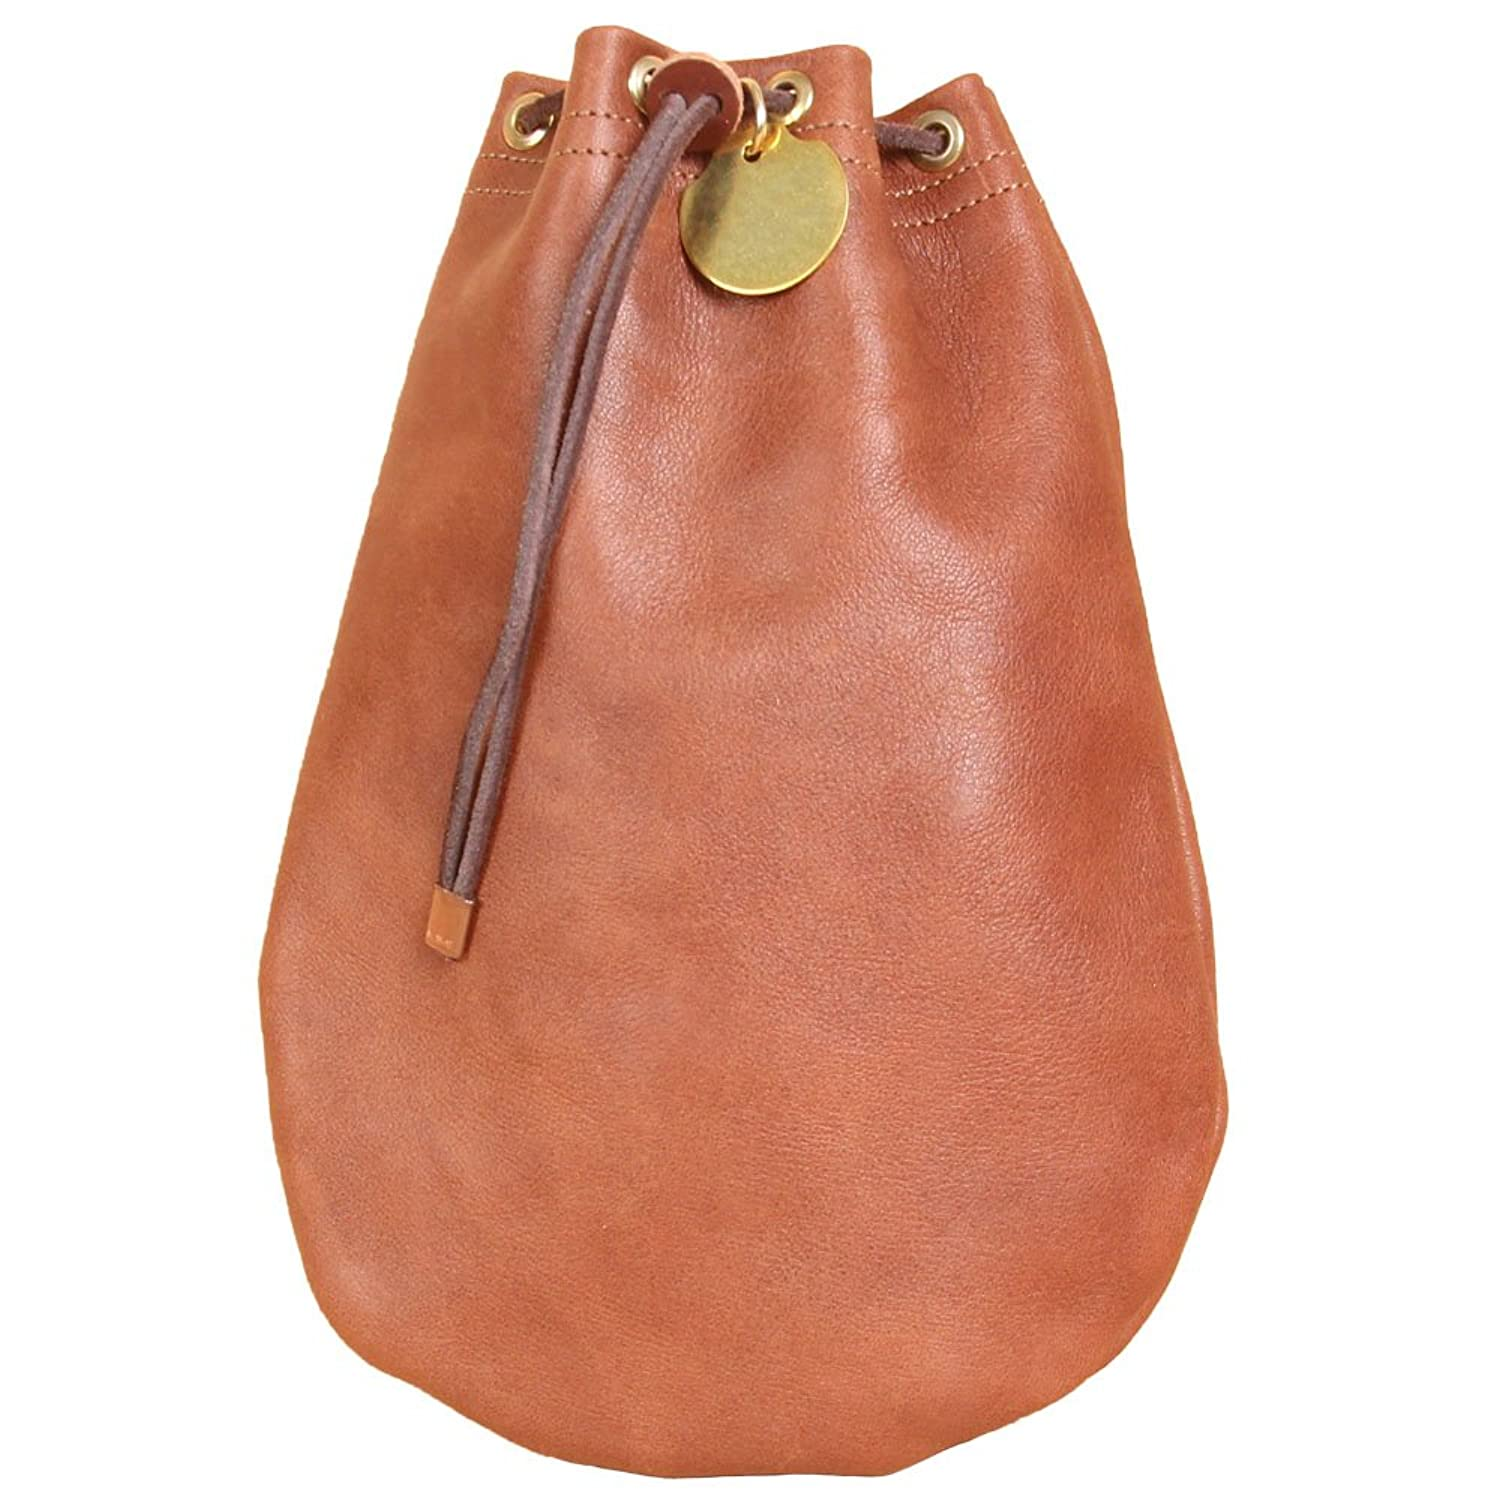 Soft Genuine Milled Tan Leather Drawstring Money Bag Made in USA